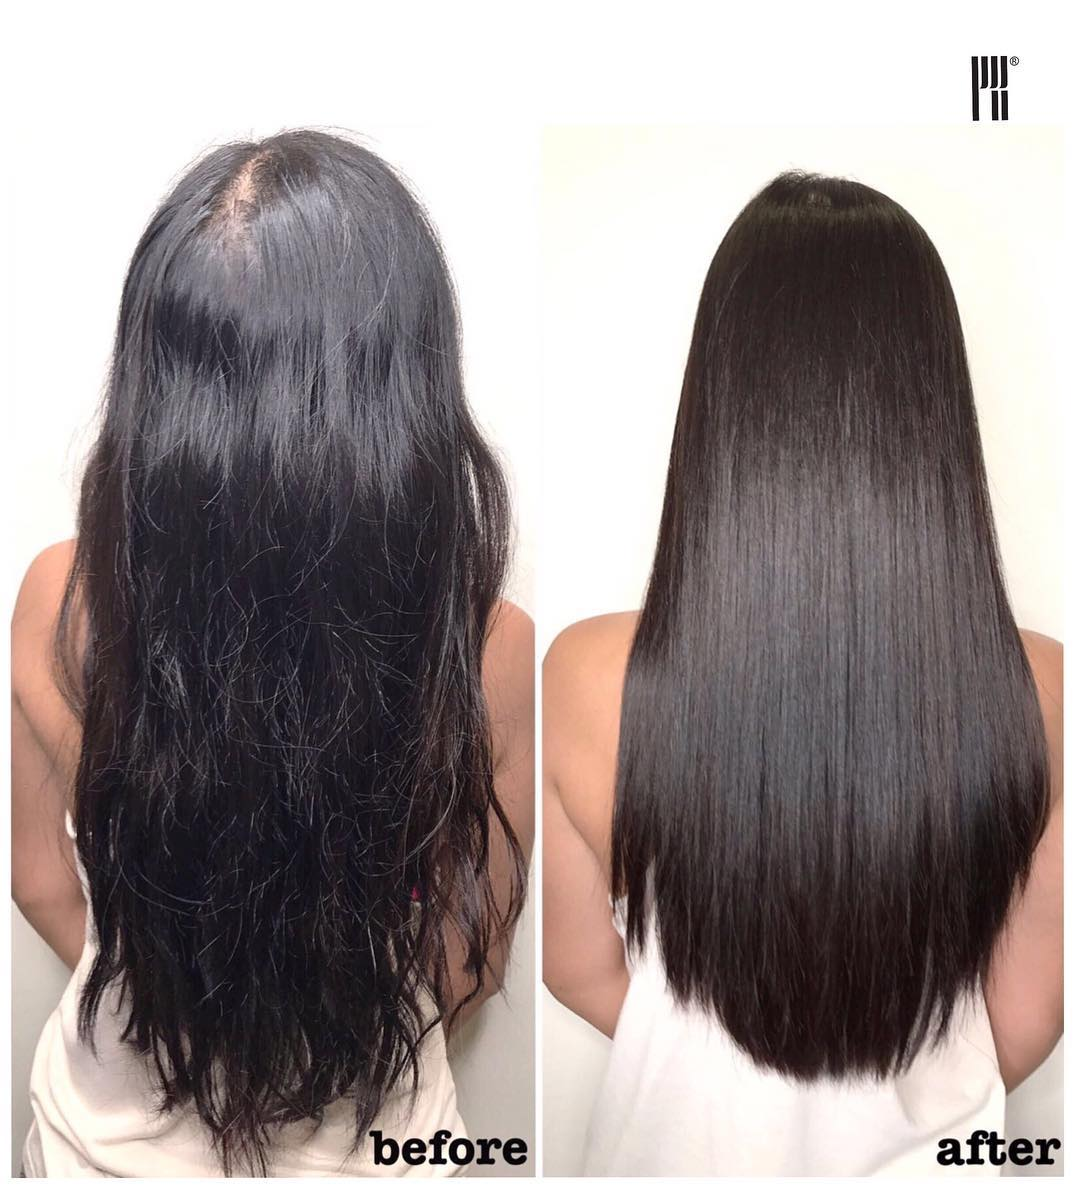 Keratin Treatment for Curly Frizzy Hair at Project Hair